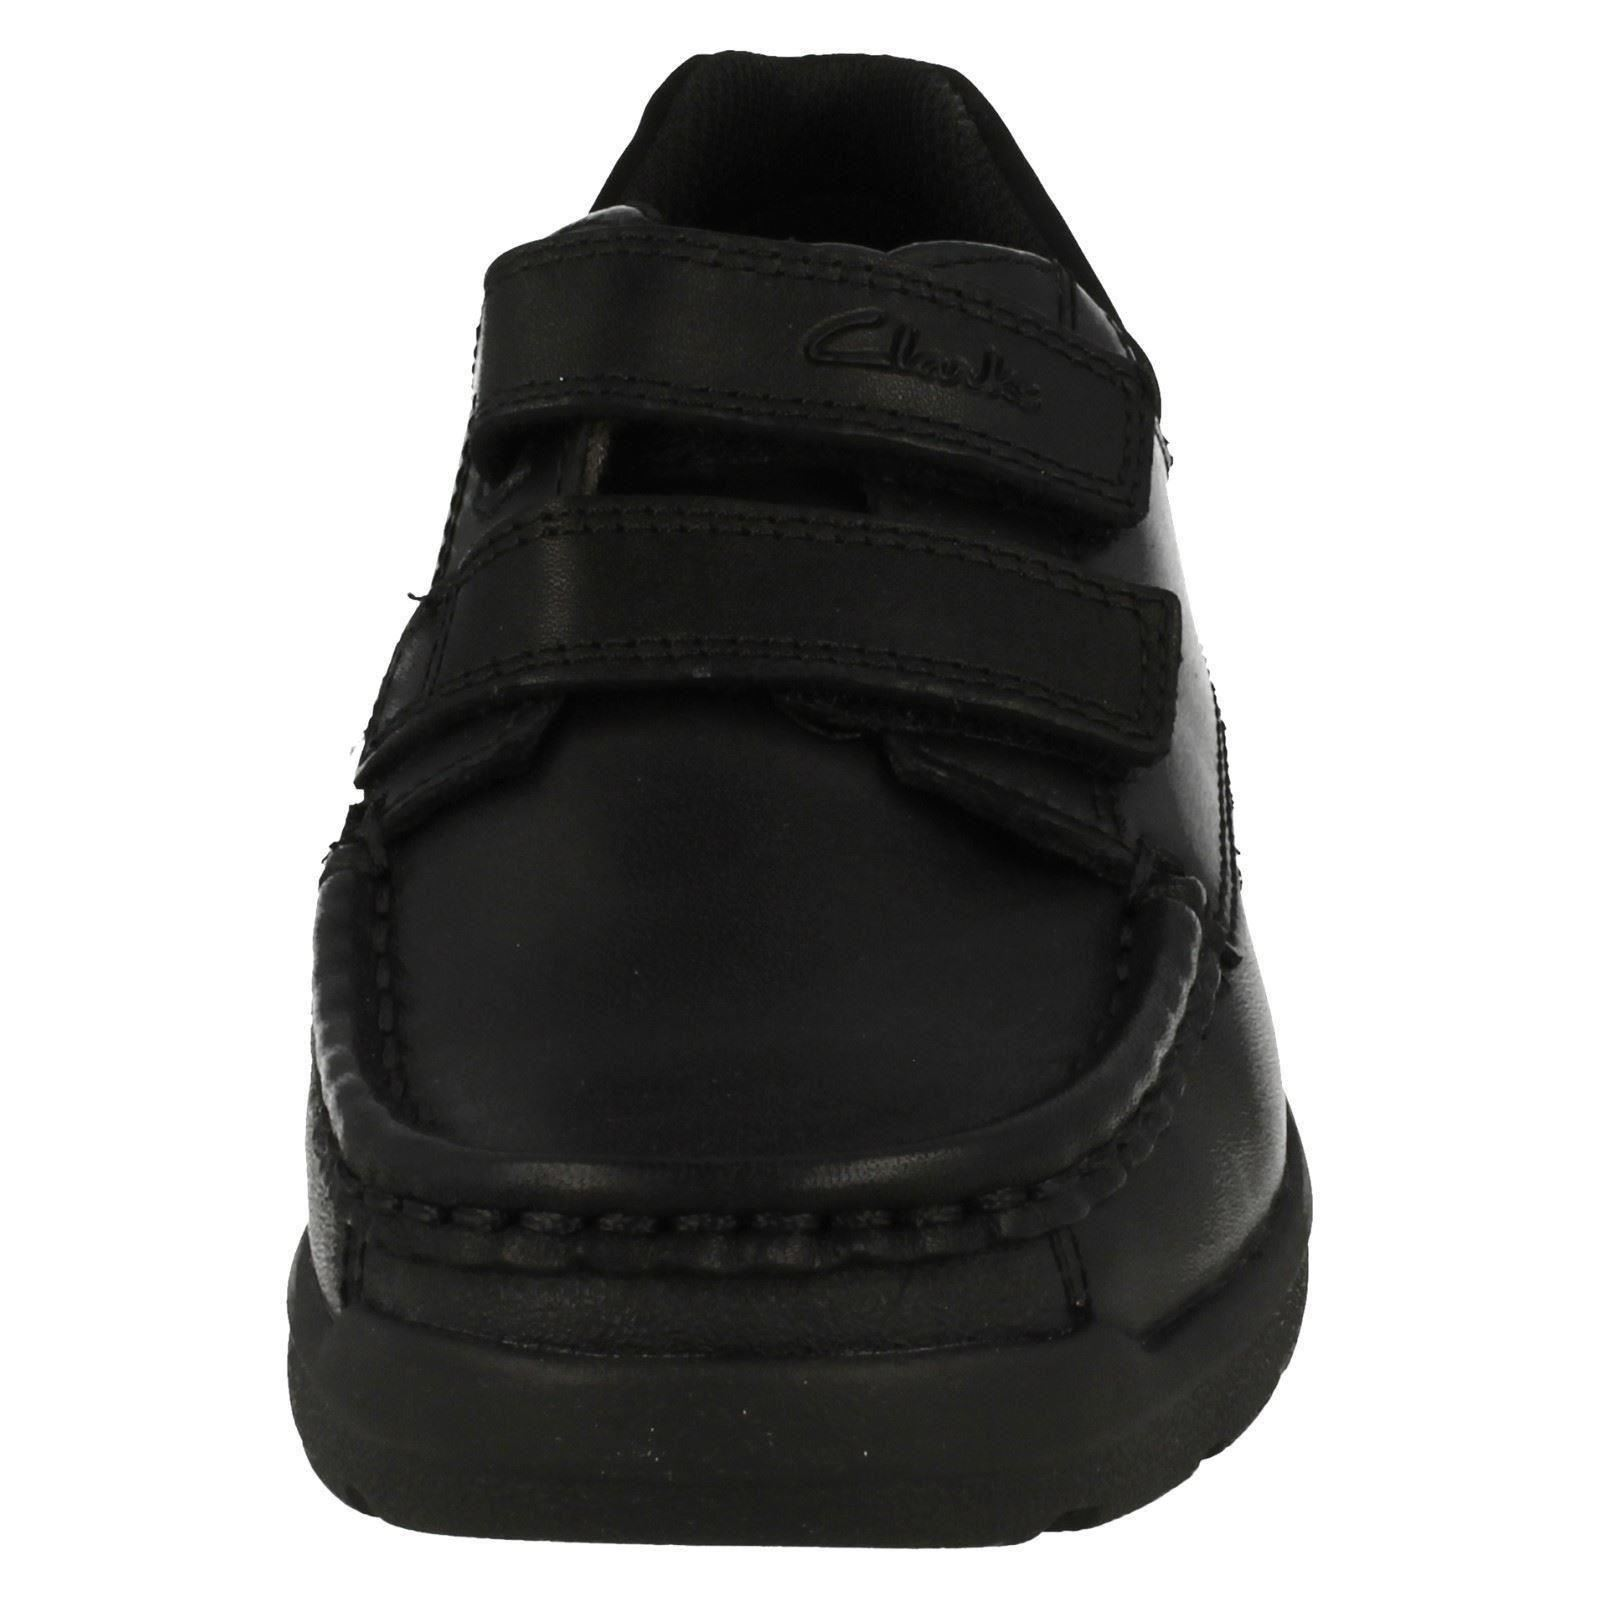 Boys Clarks Leather Smart School Shoes *Obie Play*